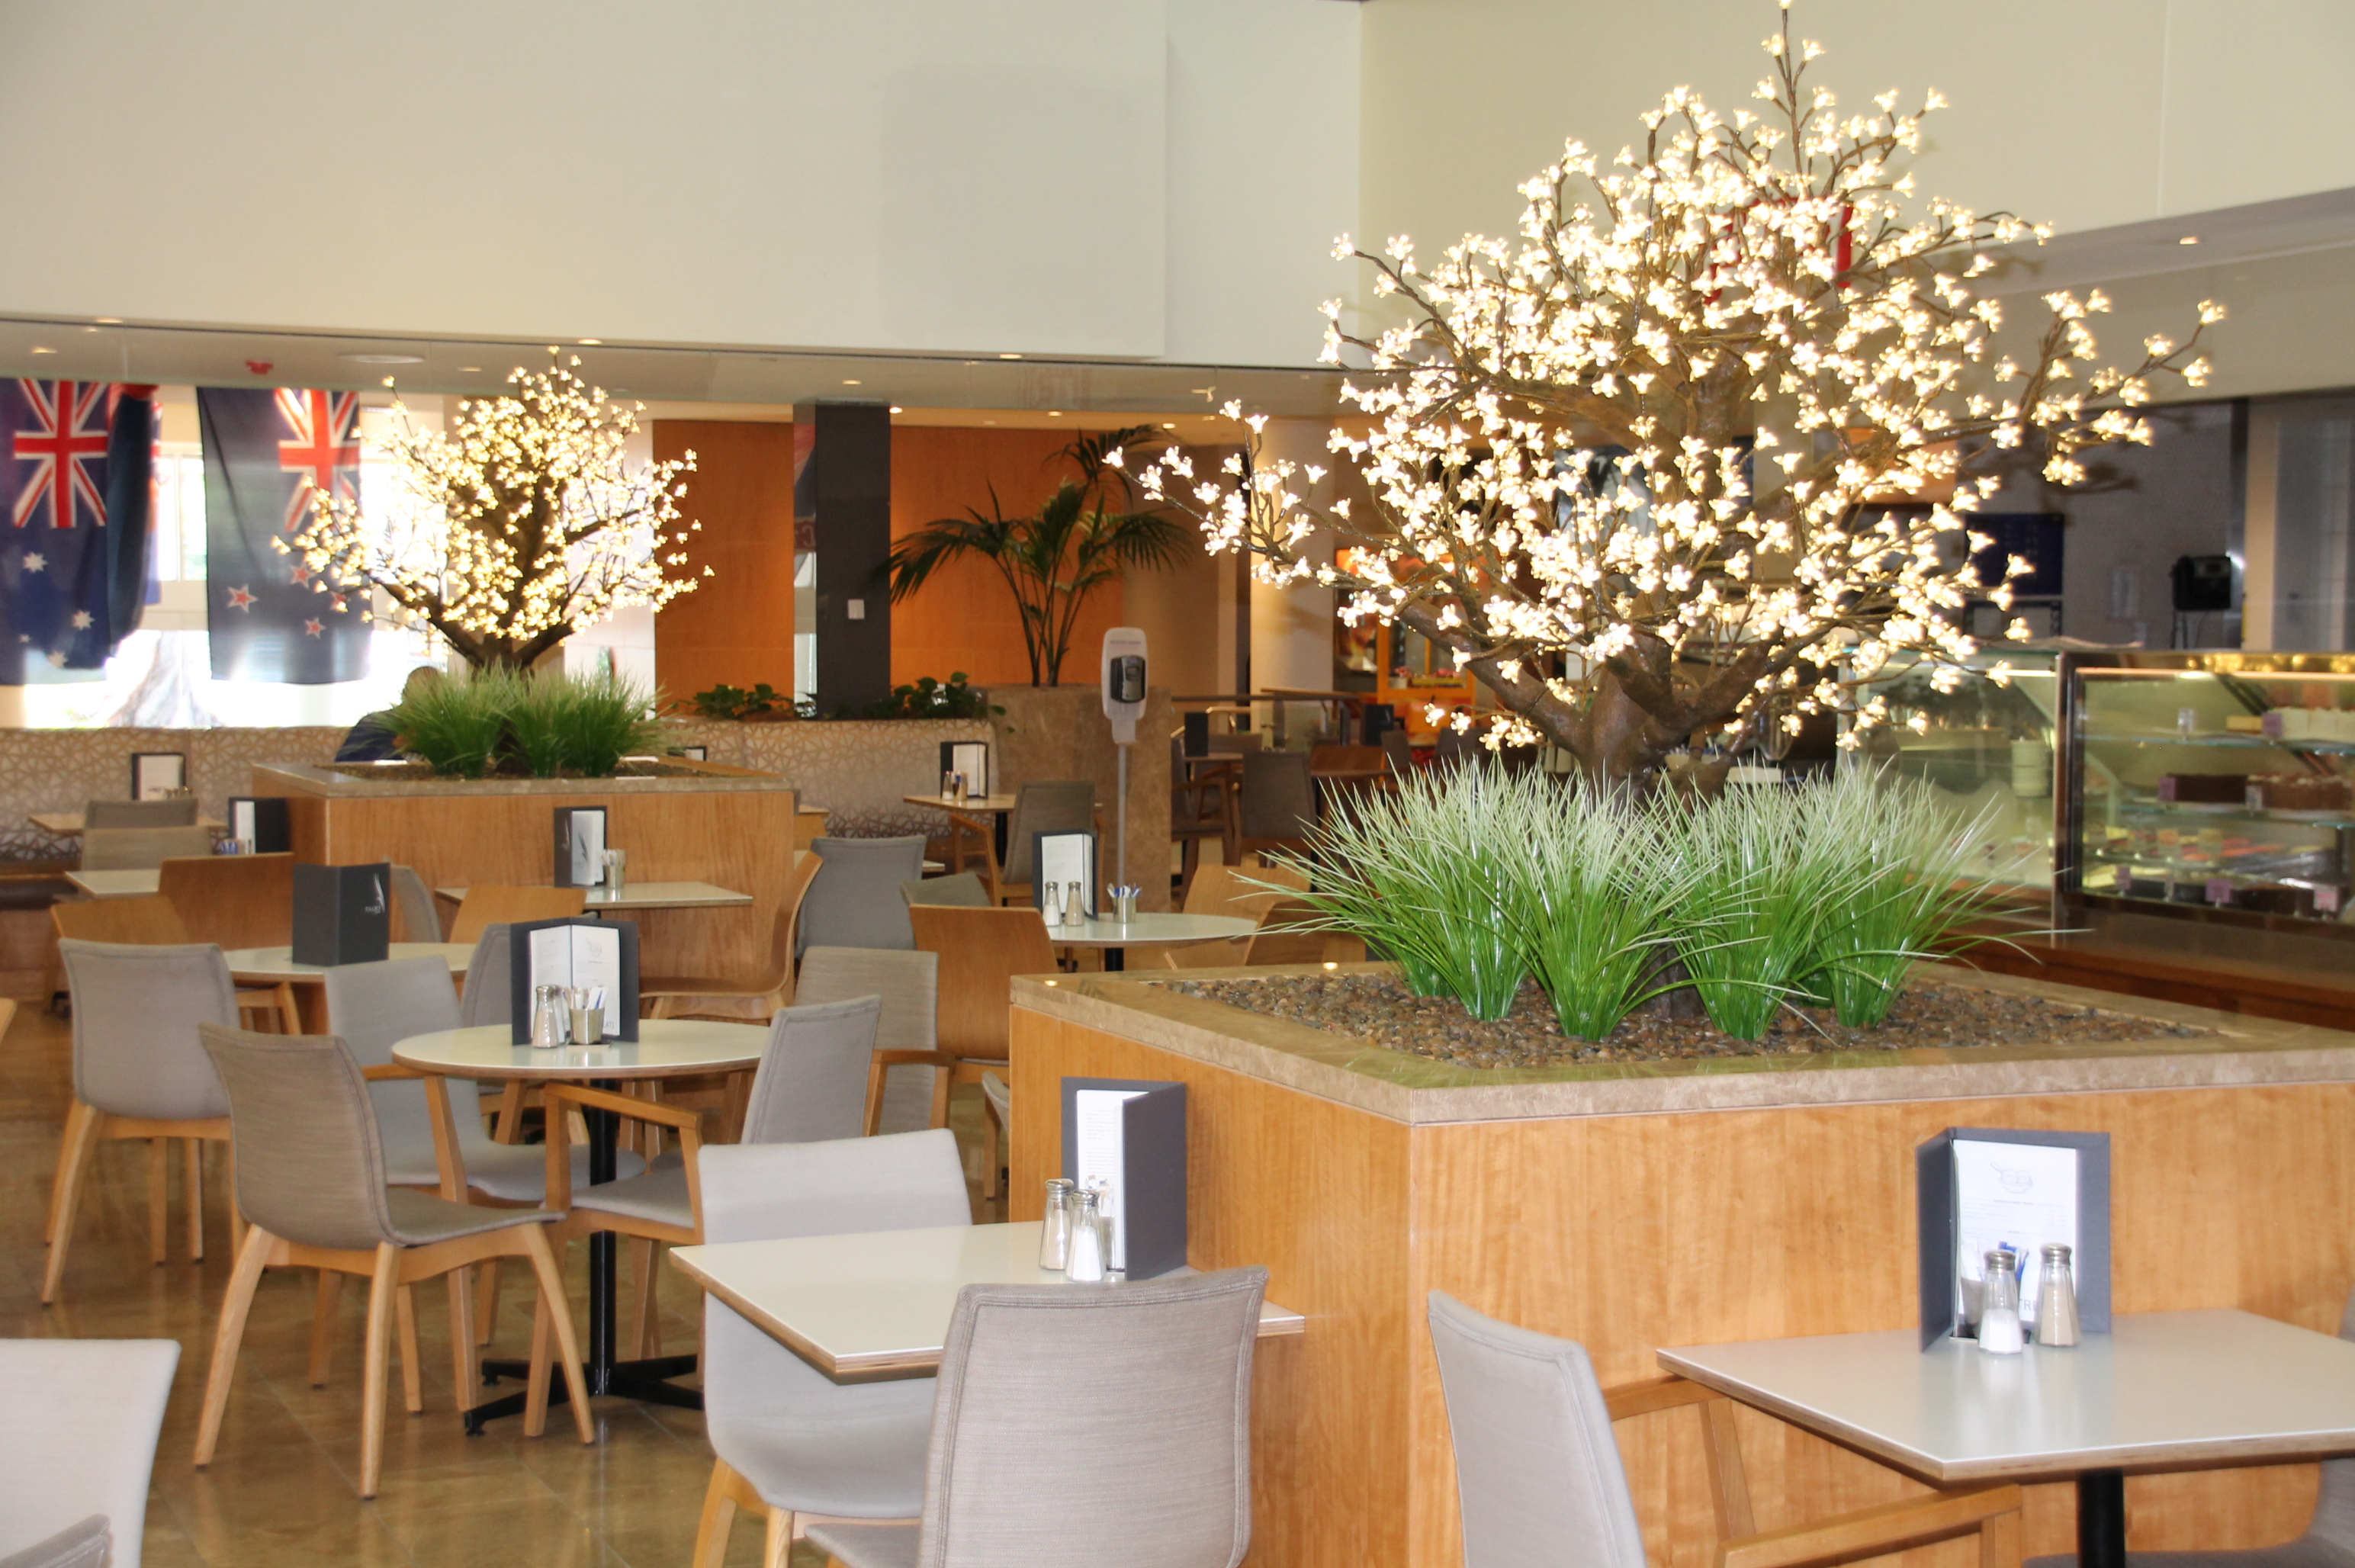 Indoor Cafe Garden with Light Trees